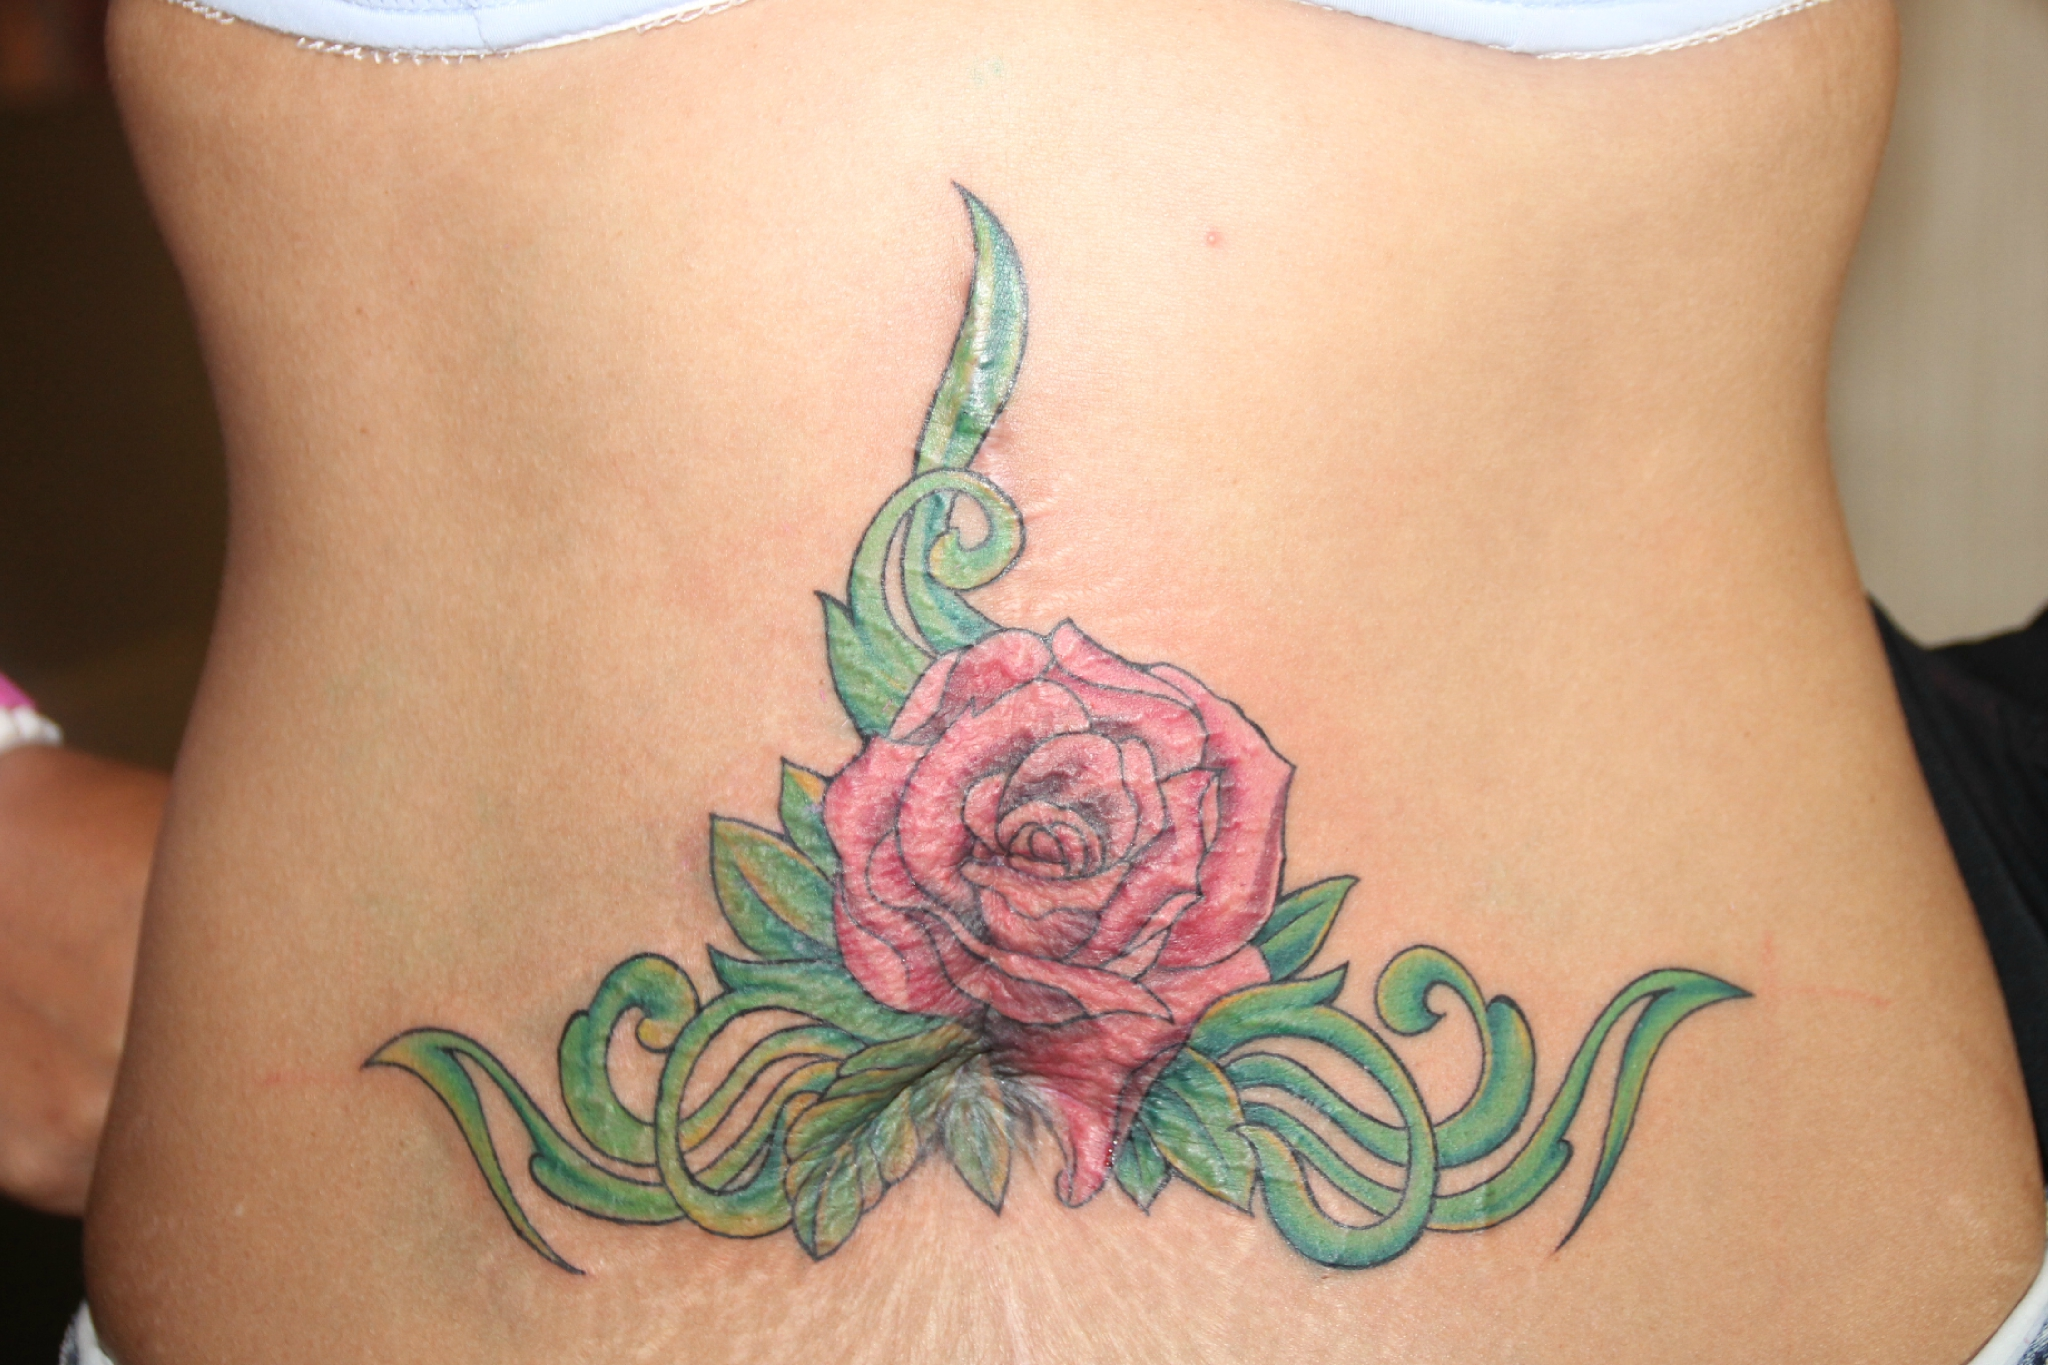 Tatouage bas ventre femme photo galerie tatouage - Tatouage femme ventre ...